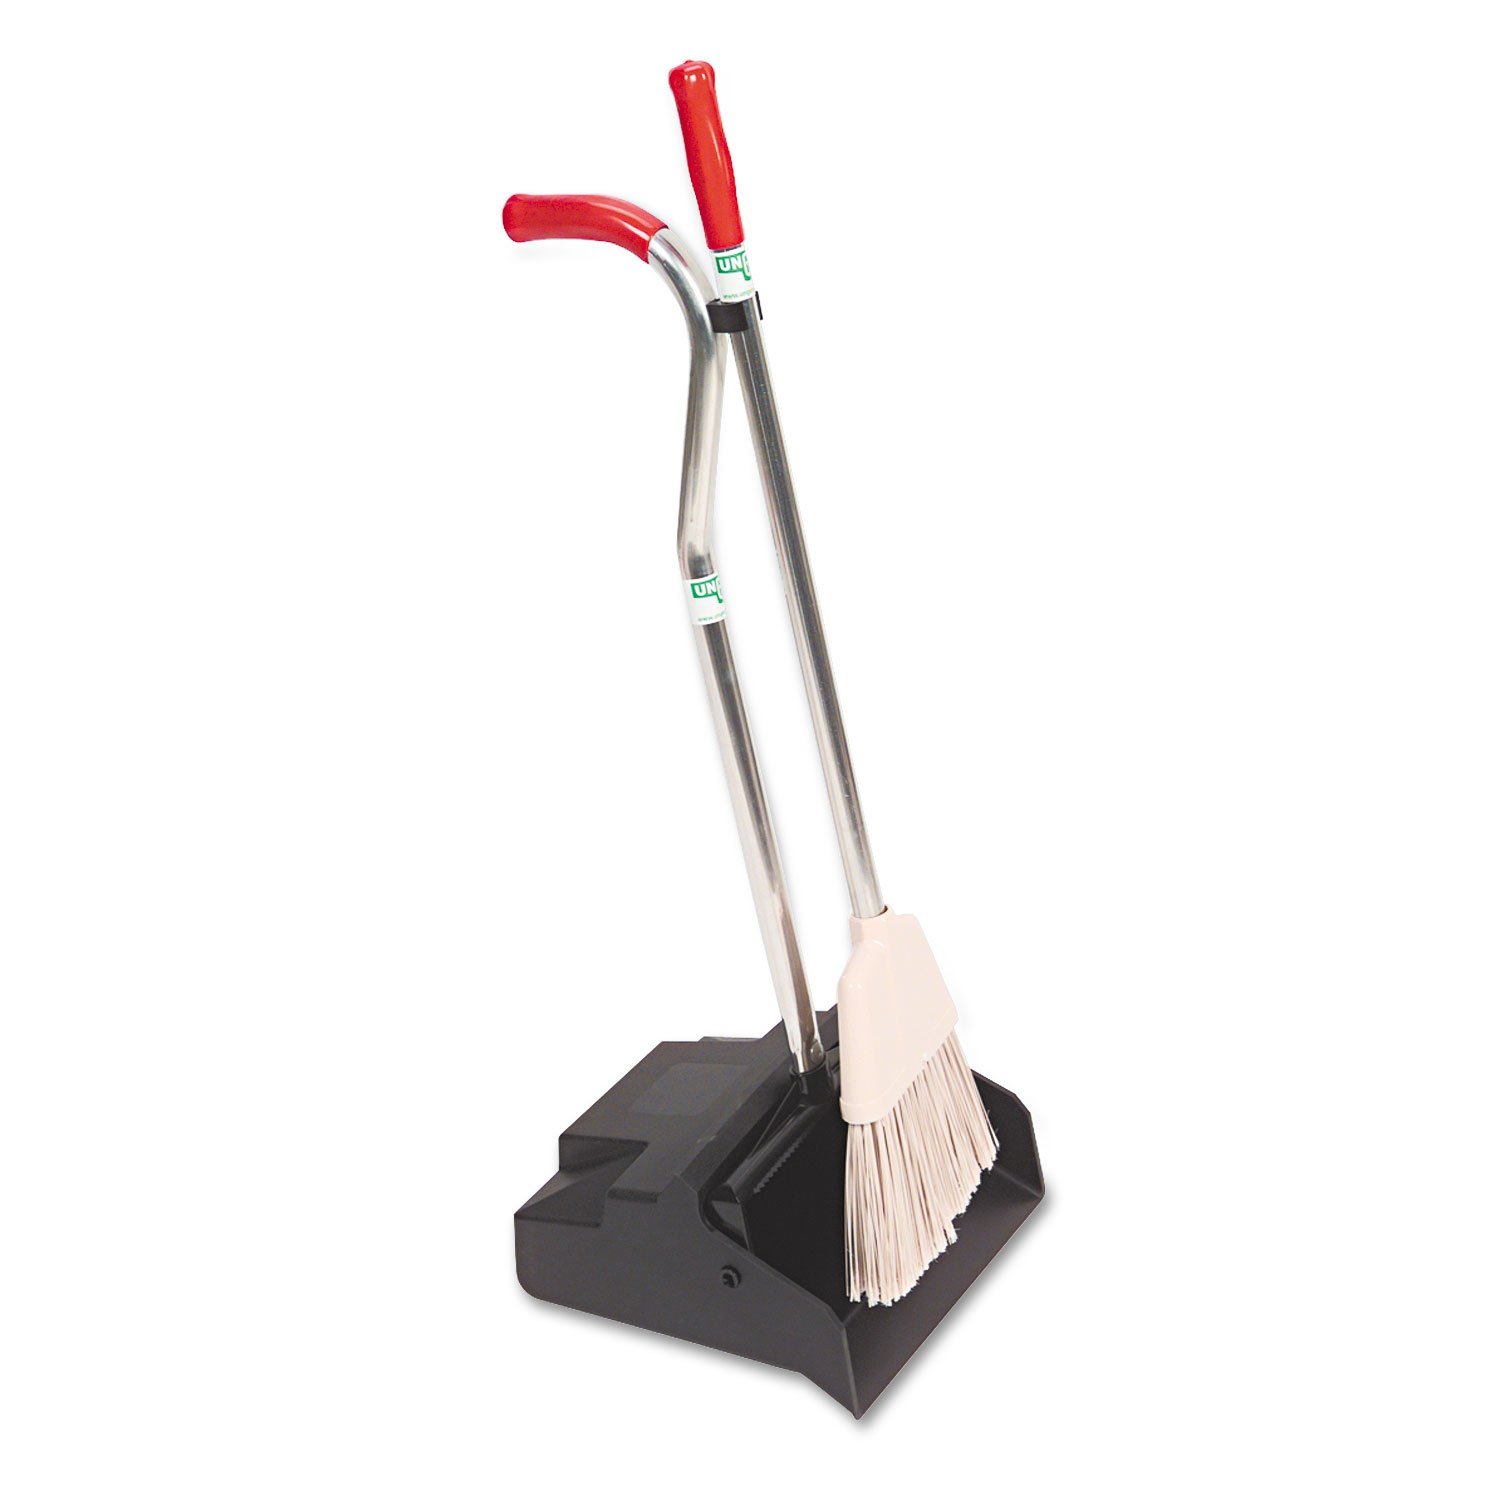 Unger EDPBR Ergo Dustpan With Broom, 12 Wide, Metal w/Vinyl Coated Handle, Red/Silver